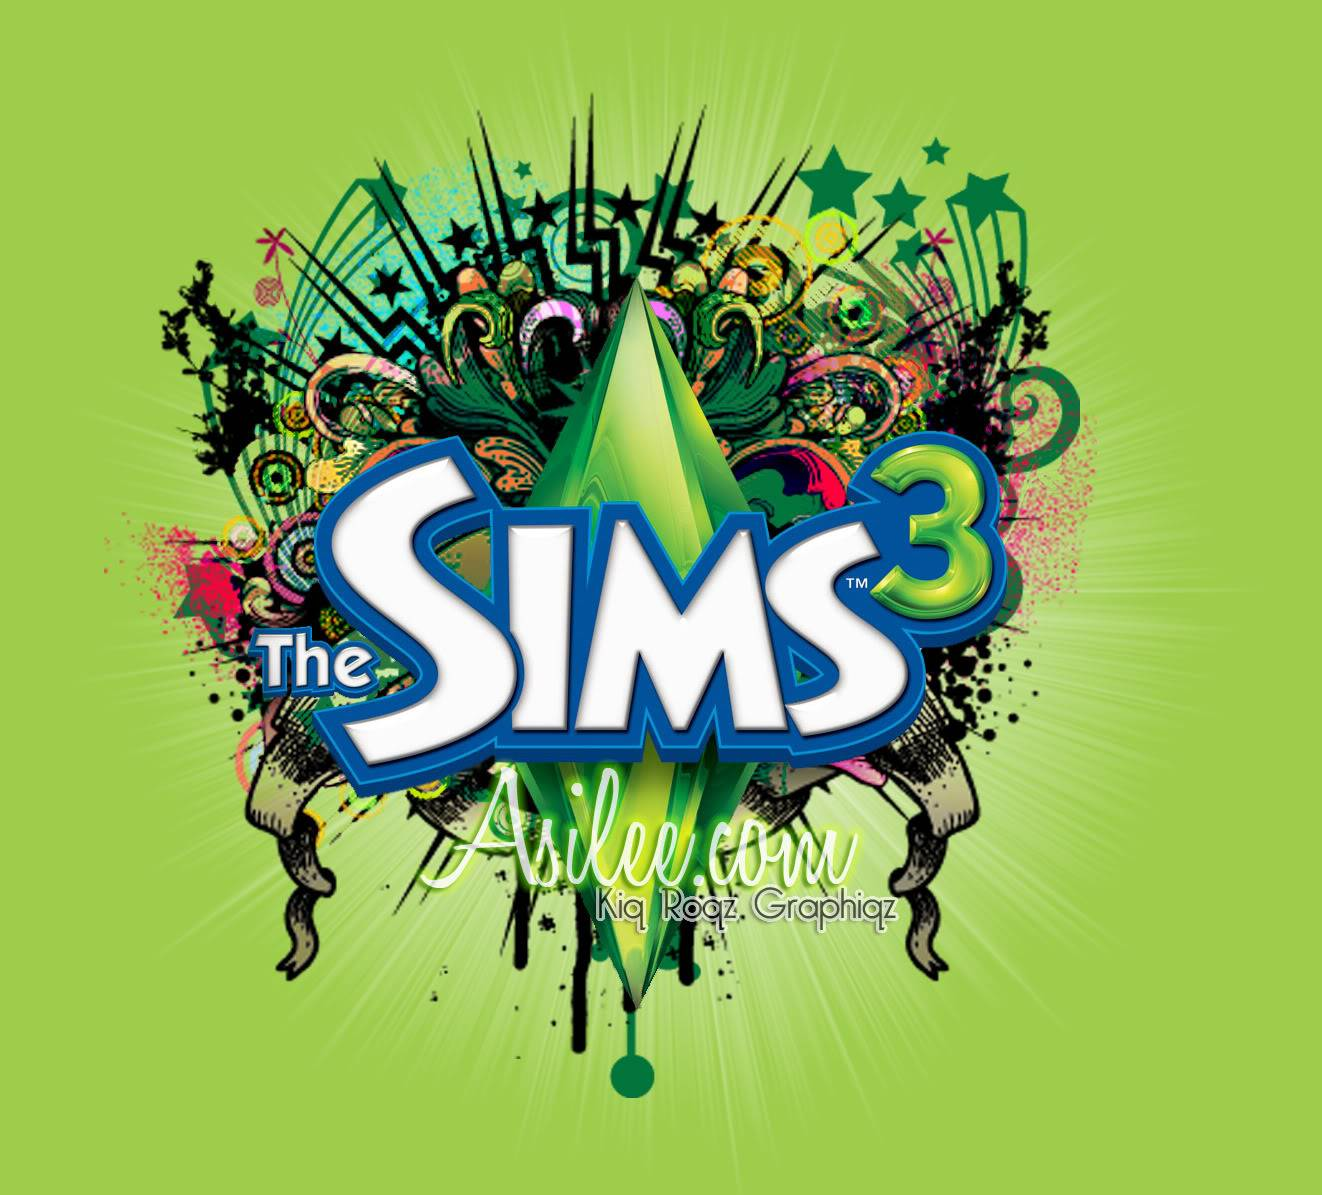 thesims3graphics   The Sims 3 Wallpaper 1322x1195